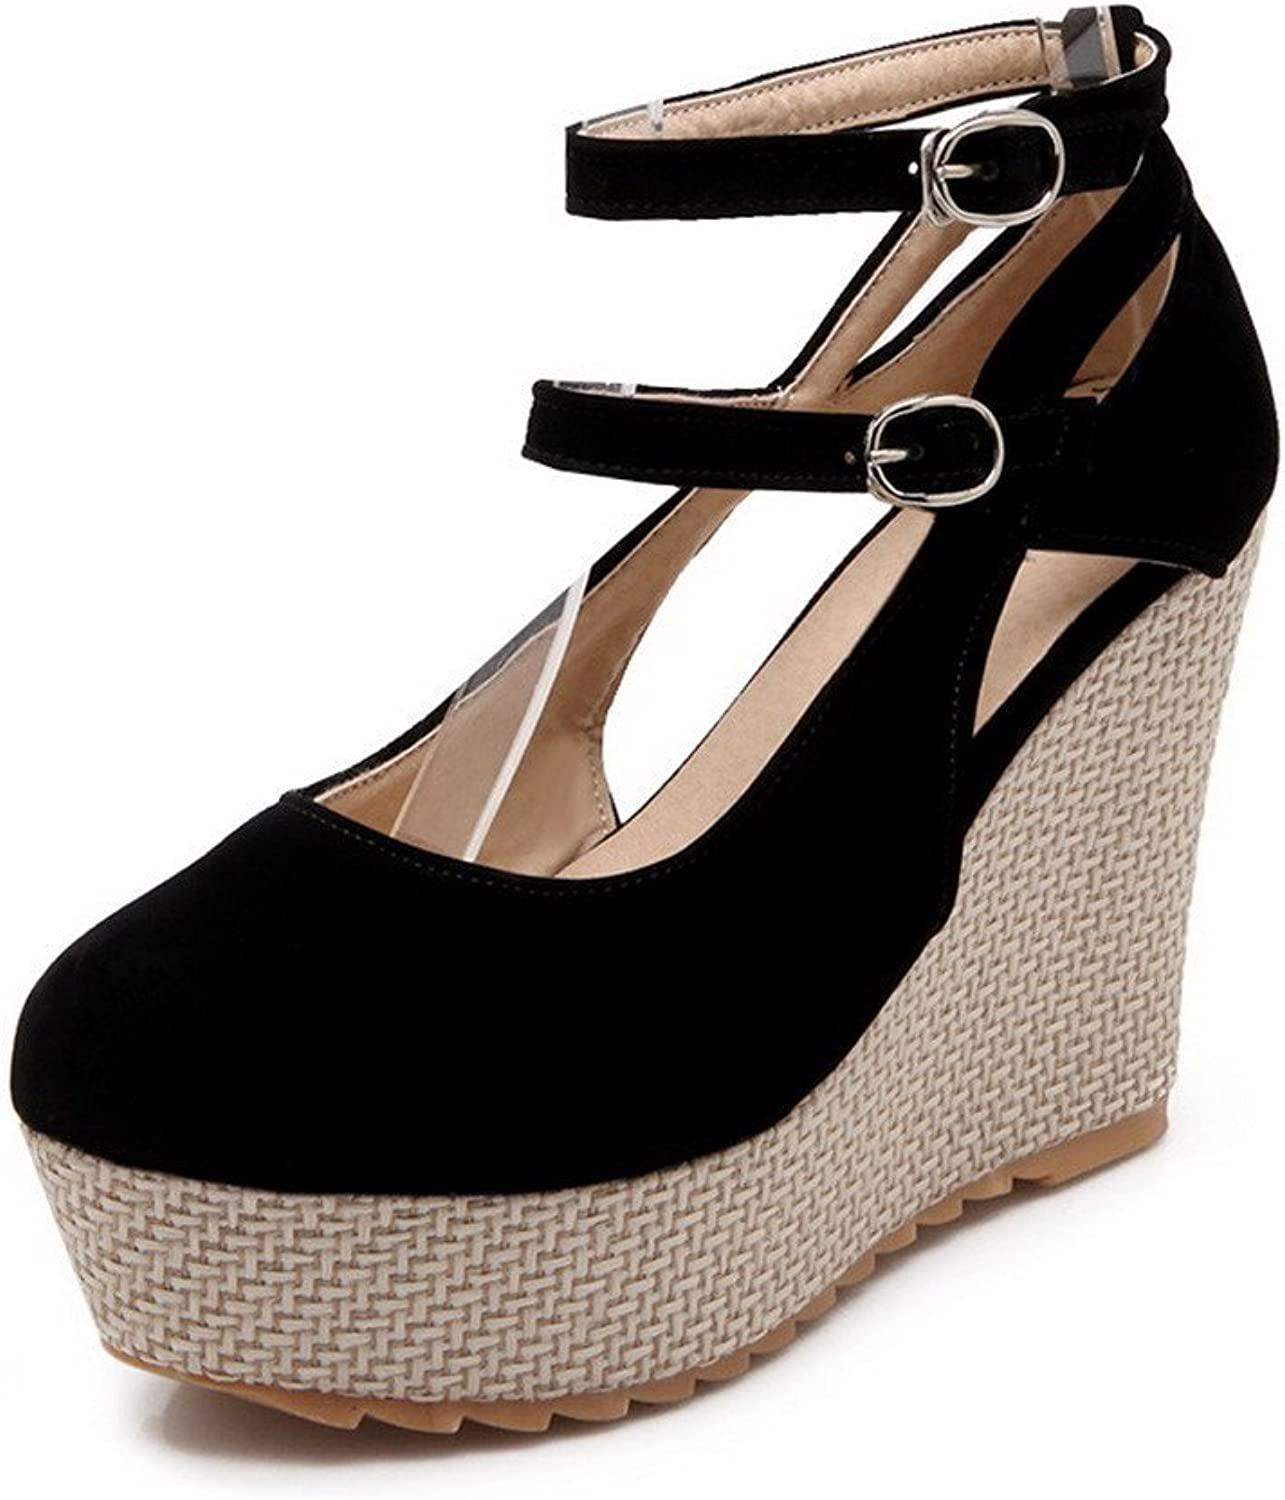 AllhqFashion Women's Buckle Round Closed Toe High Heels Frosted Solid Pumps-shoes